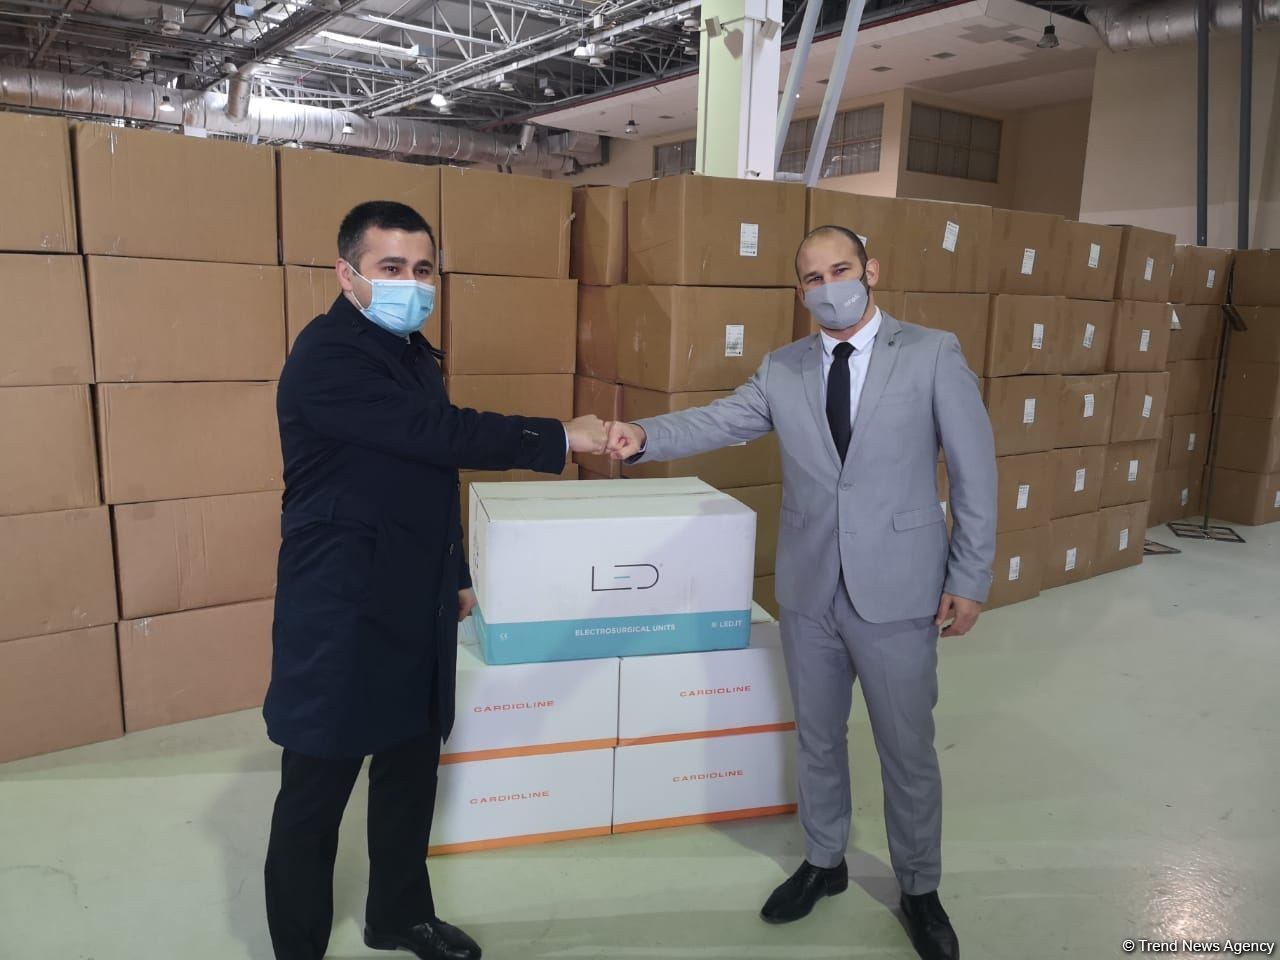 Israel provides humanitarian aid in framework of Medical cooperation with Azerbaijan (PHOTO)